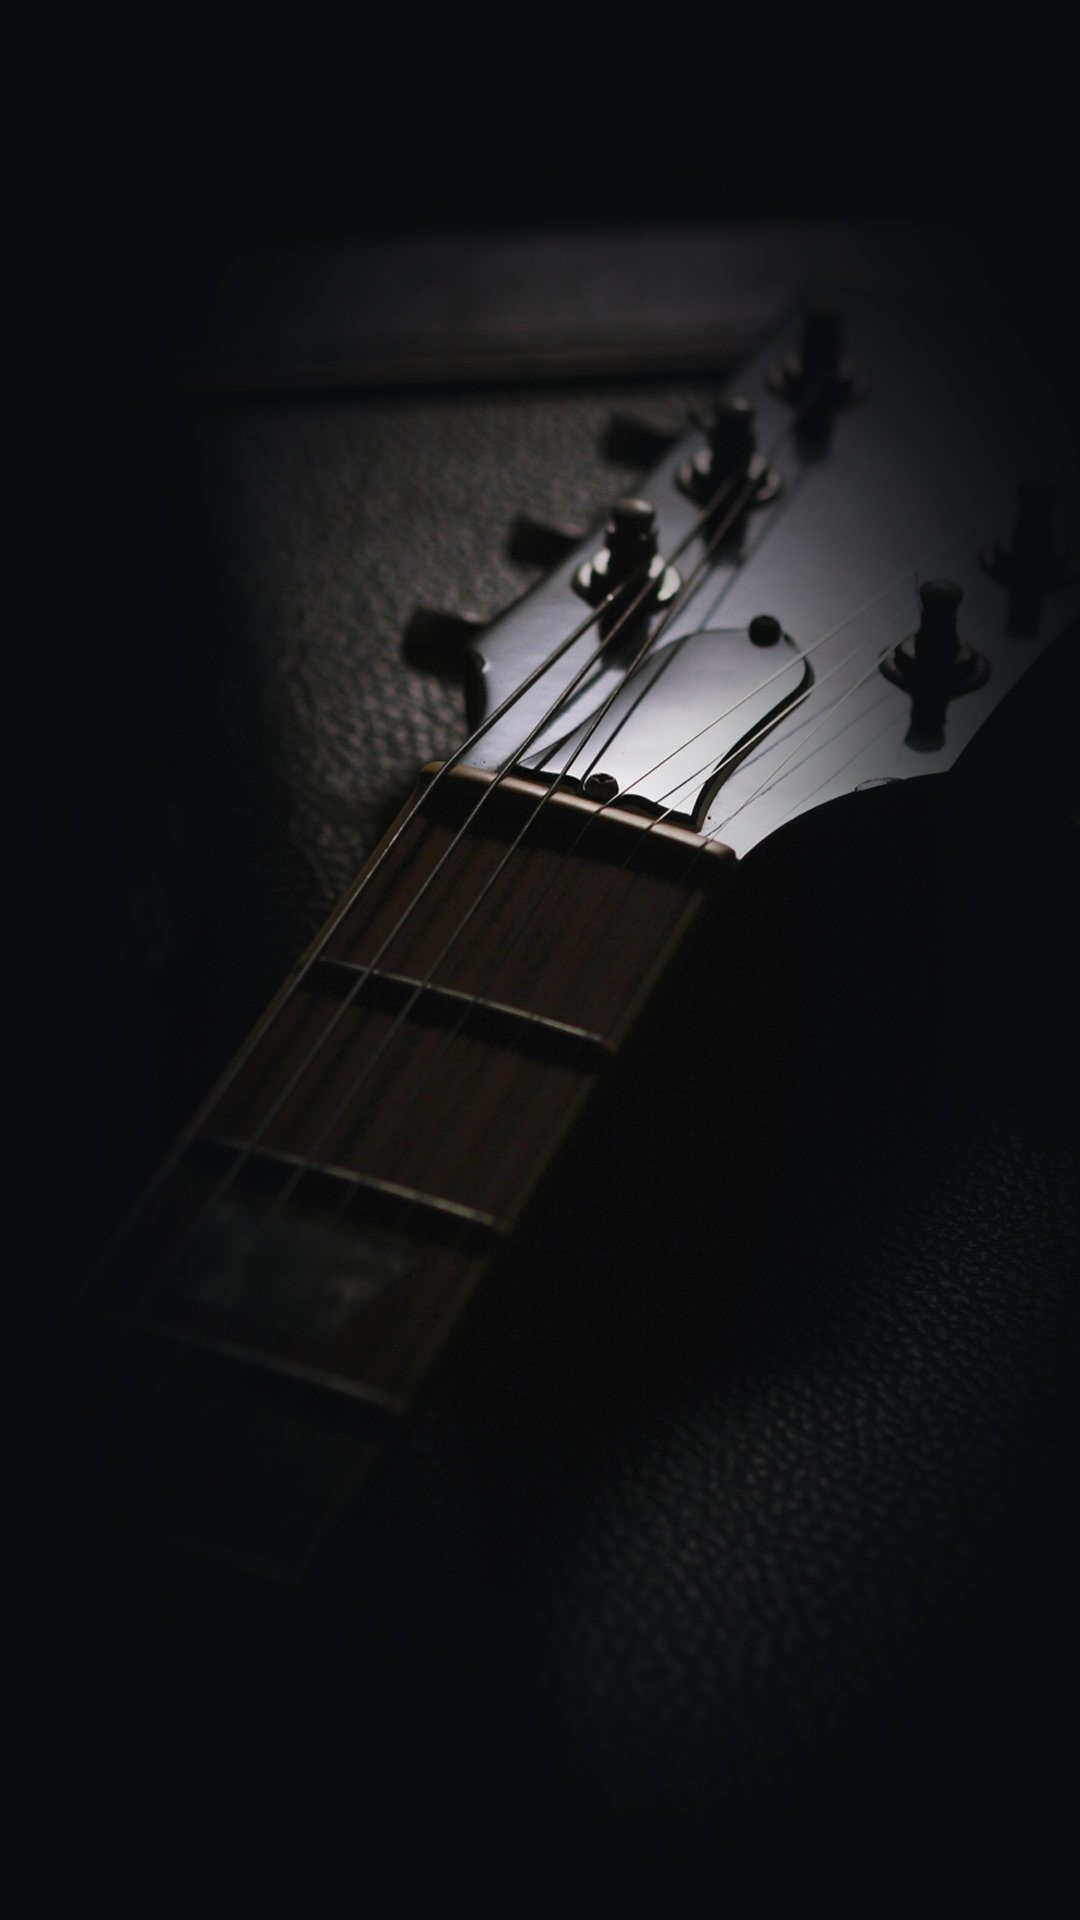 1080x1920 ... guitar fire black wallpapers - photo #22 ...